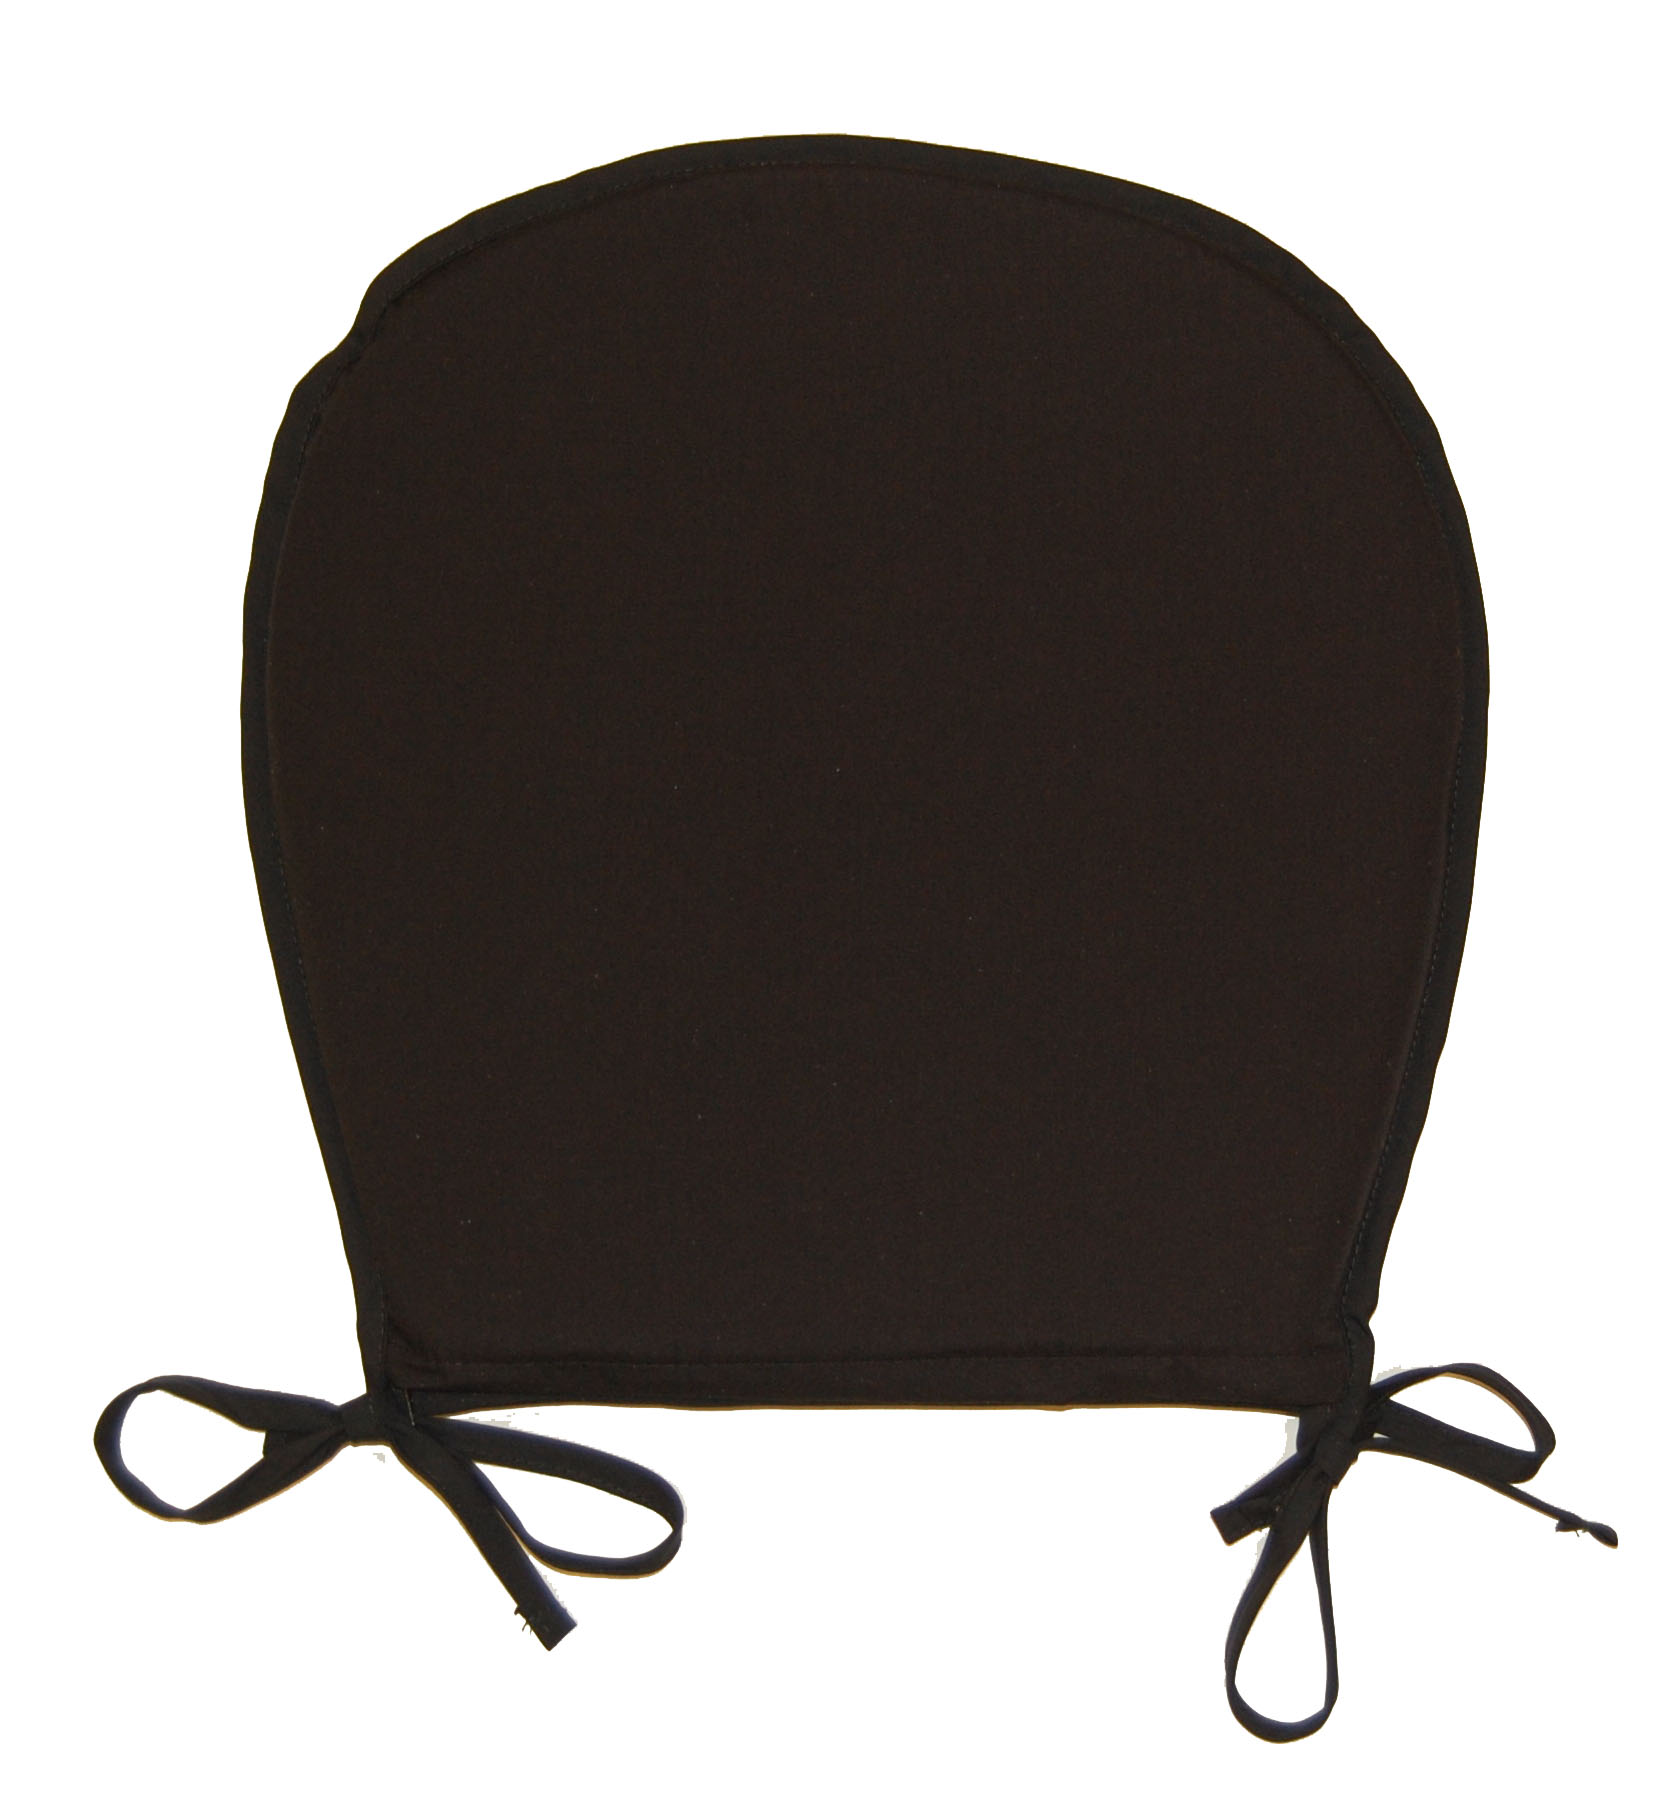 chair pads for kitchen chairs cushions for kitchen chairs Great Chair Seat Pad kB jpeg